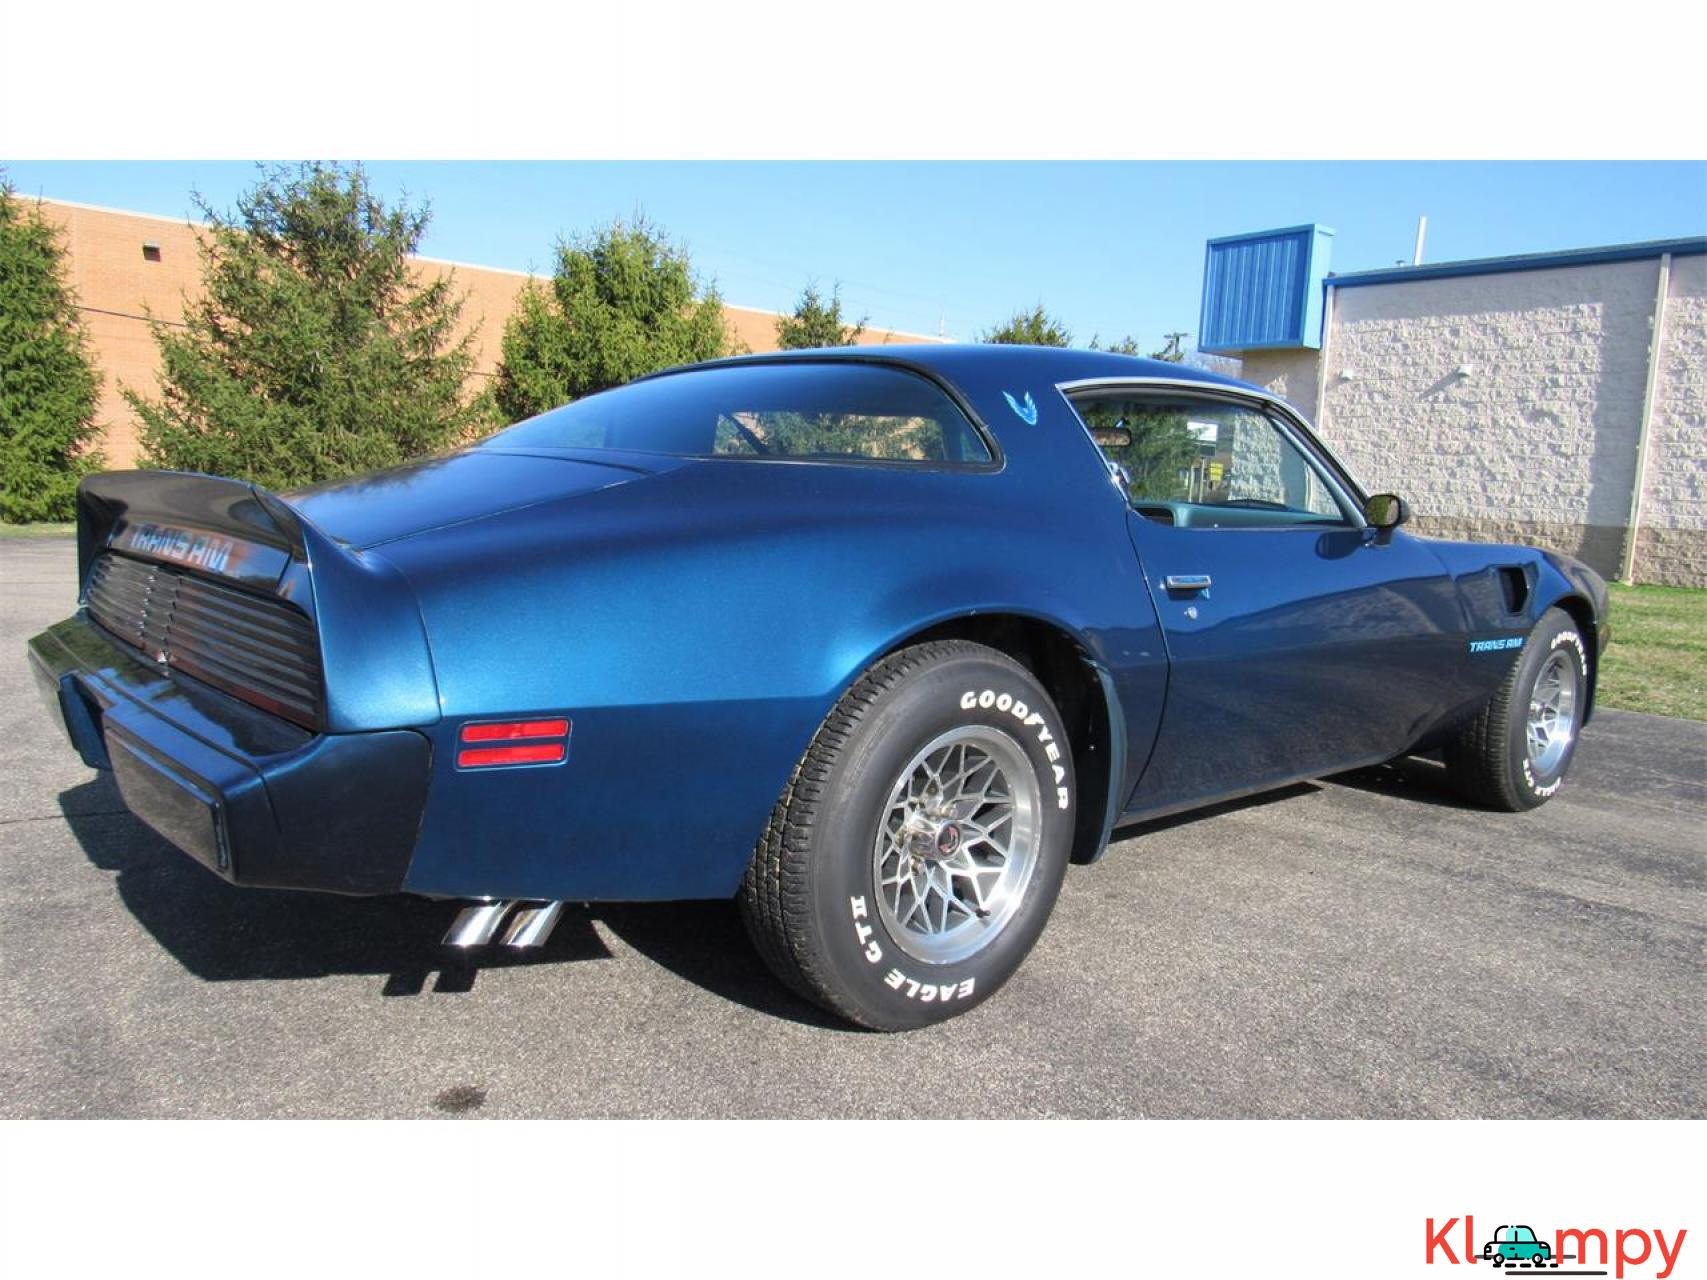 1979 Pontiac Firebird Trans Am 400 engine Original - 3/20